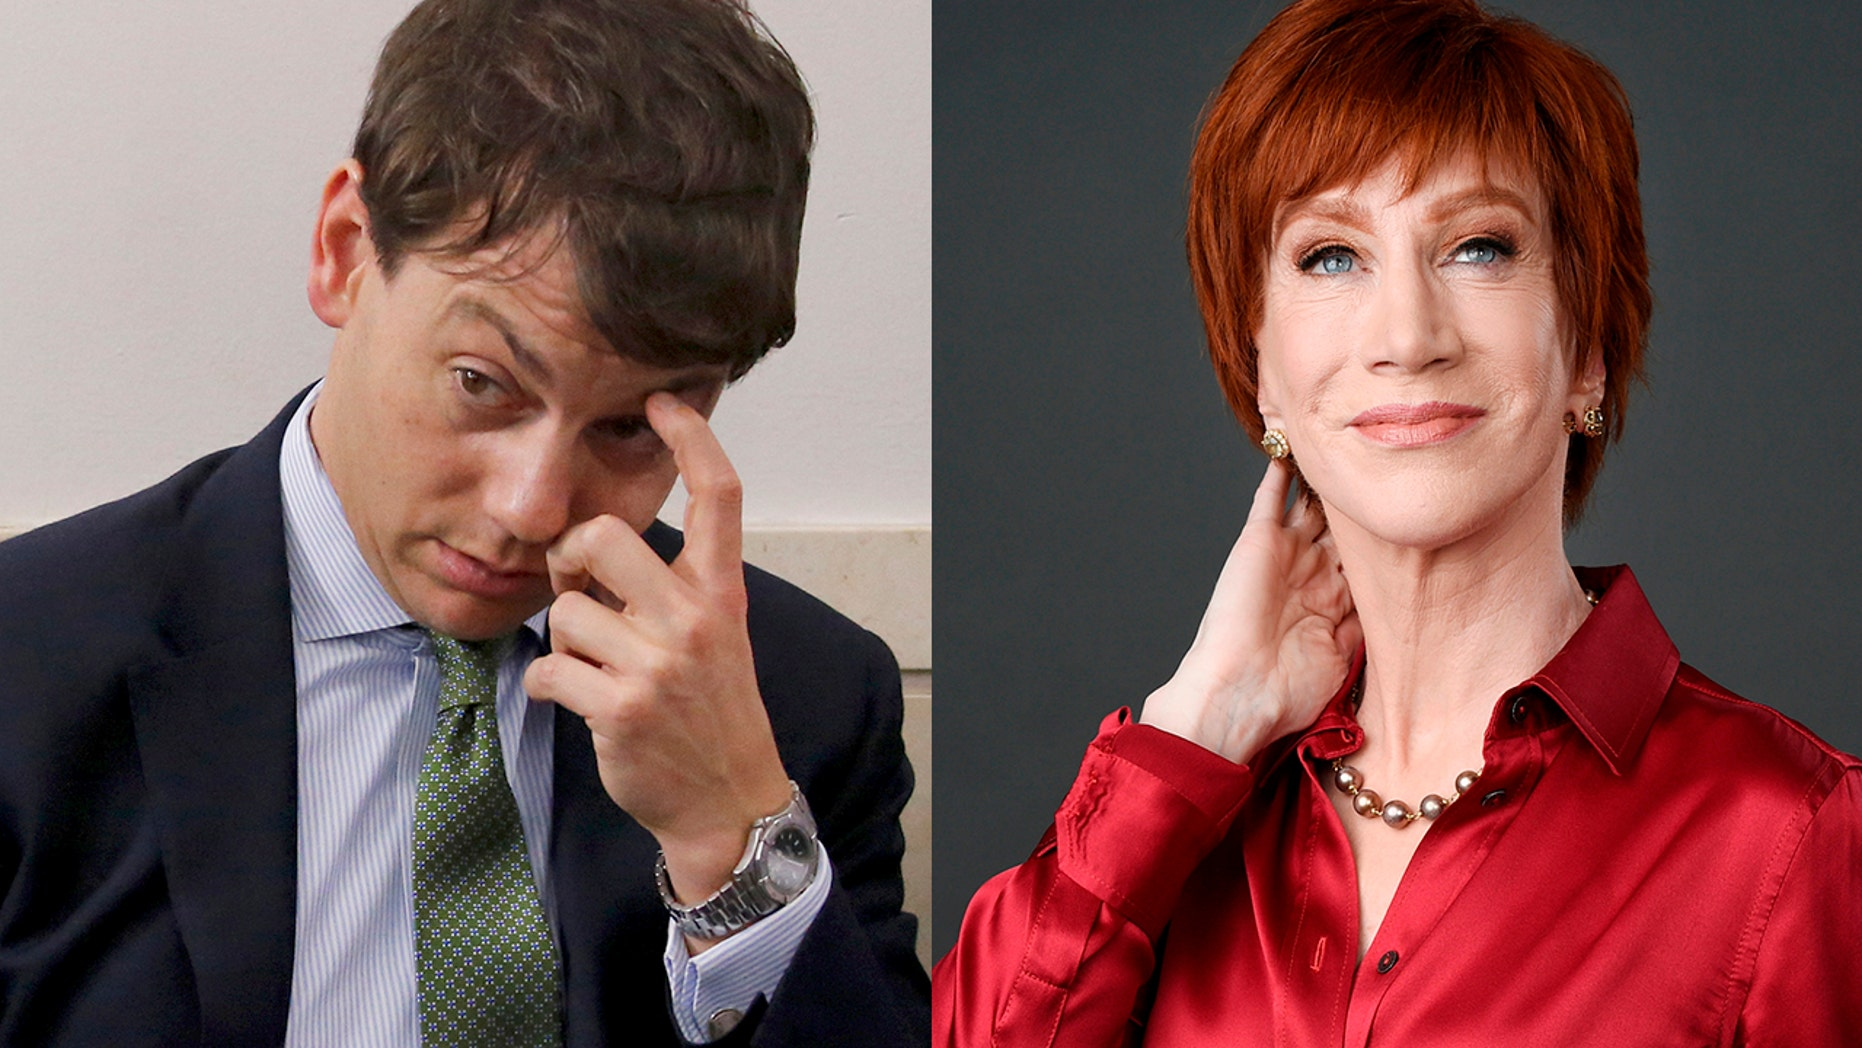 Kathy Griffin reportedly engaged in an expletive-filled attack against Deputy White House Press Secretary Hogan Gidley at the White House Correspondents' Dinner on Saturday.